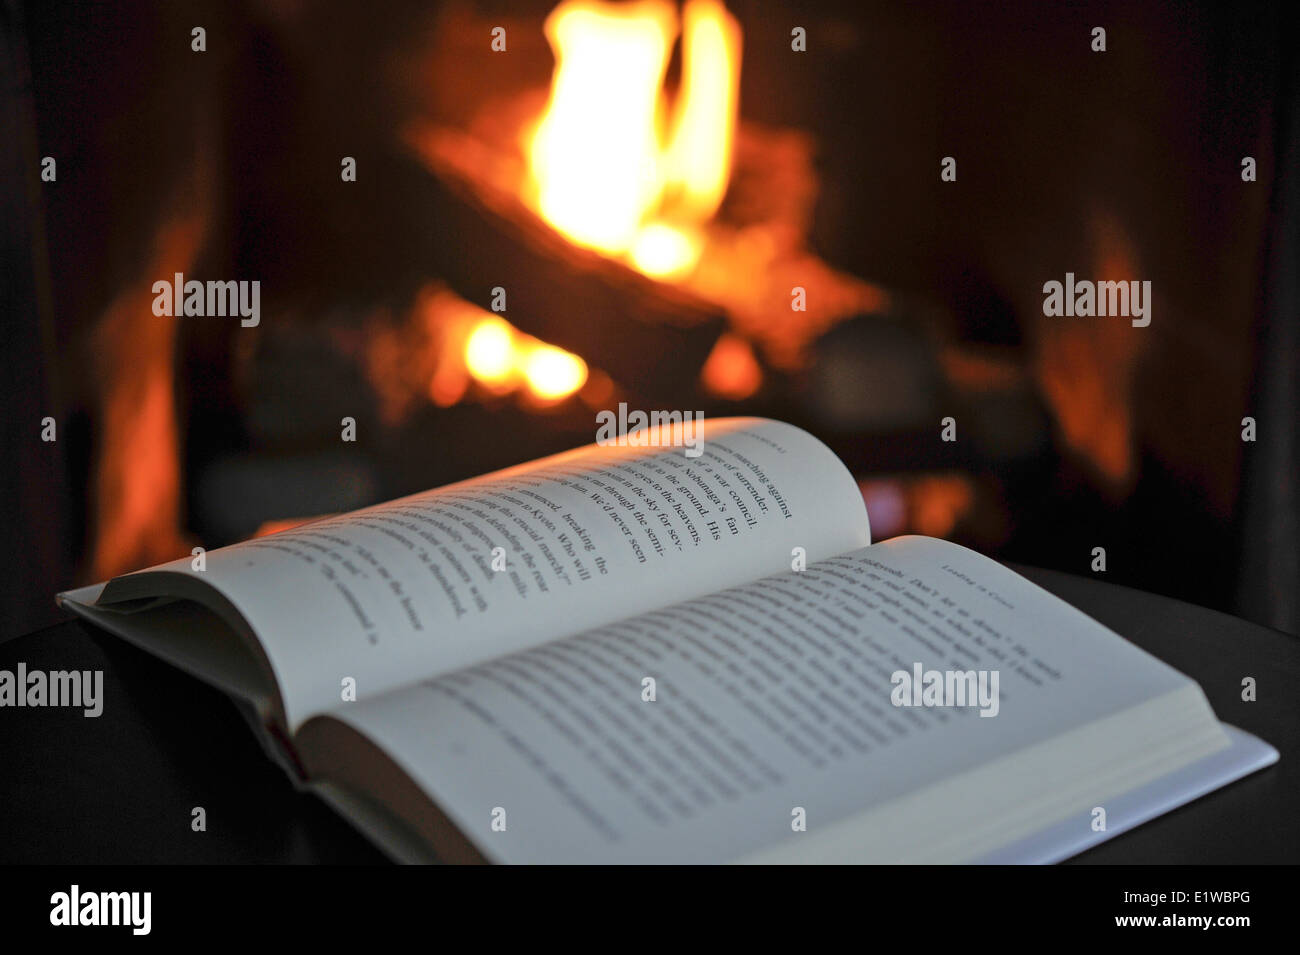 Open book by a fireplace - Stock Image